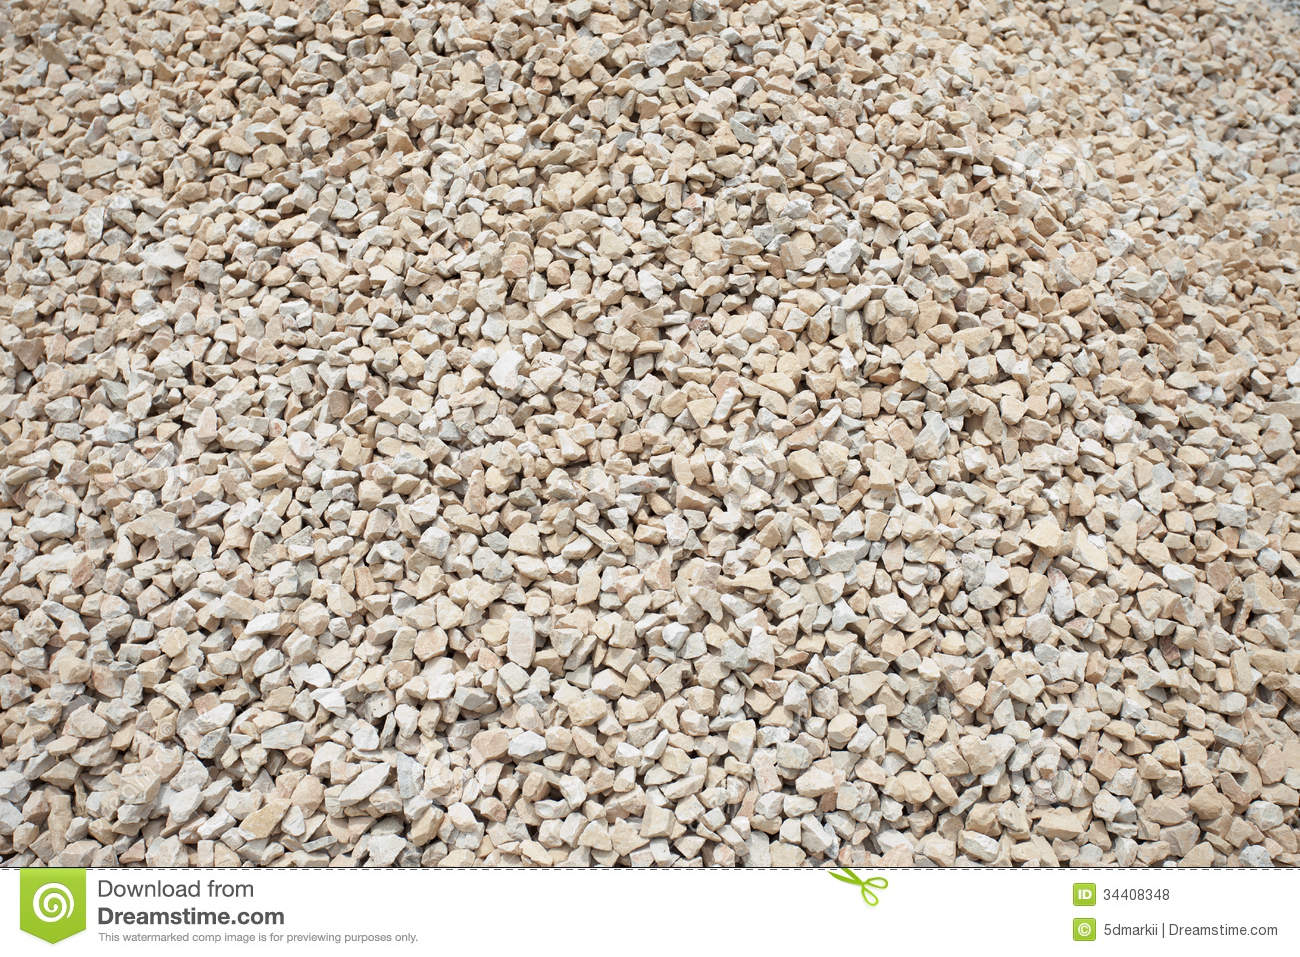 Stone Building Material : Small stone for building material royalty free stock